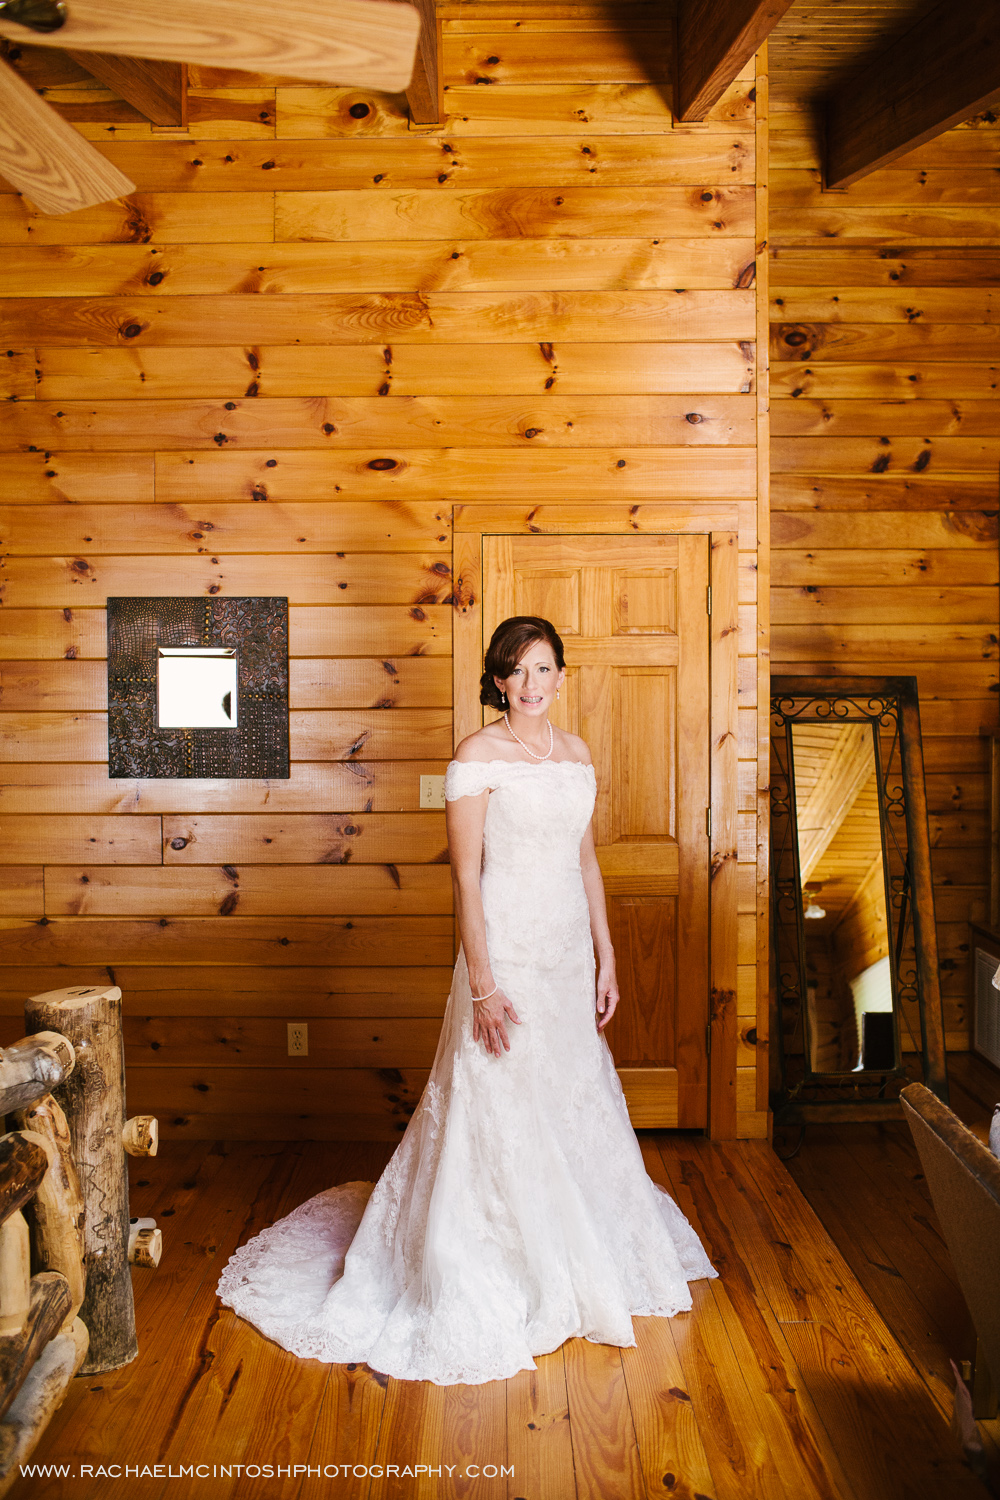 Rivers Ridge Lodge Wedding, Asheville North Carolina-36.jpg